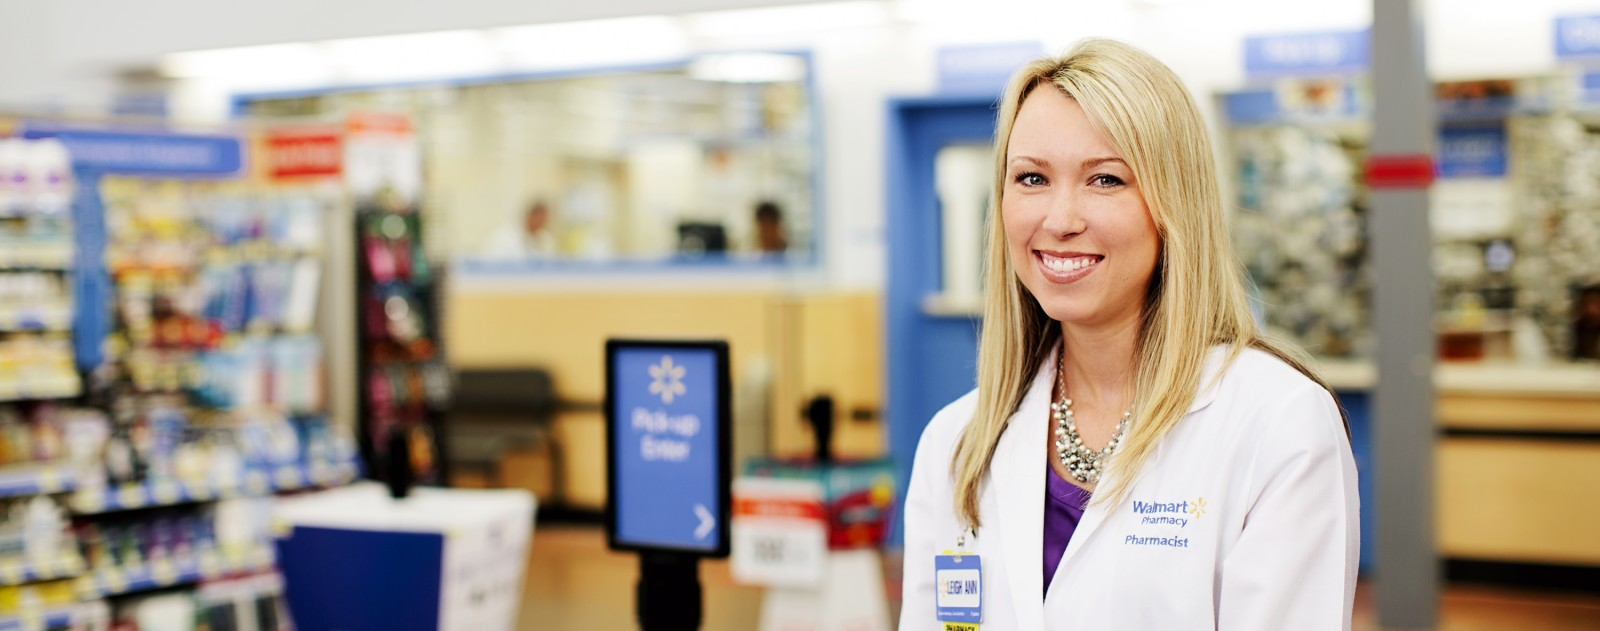 pharmacy manager in harker heights tx walmart careers